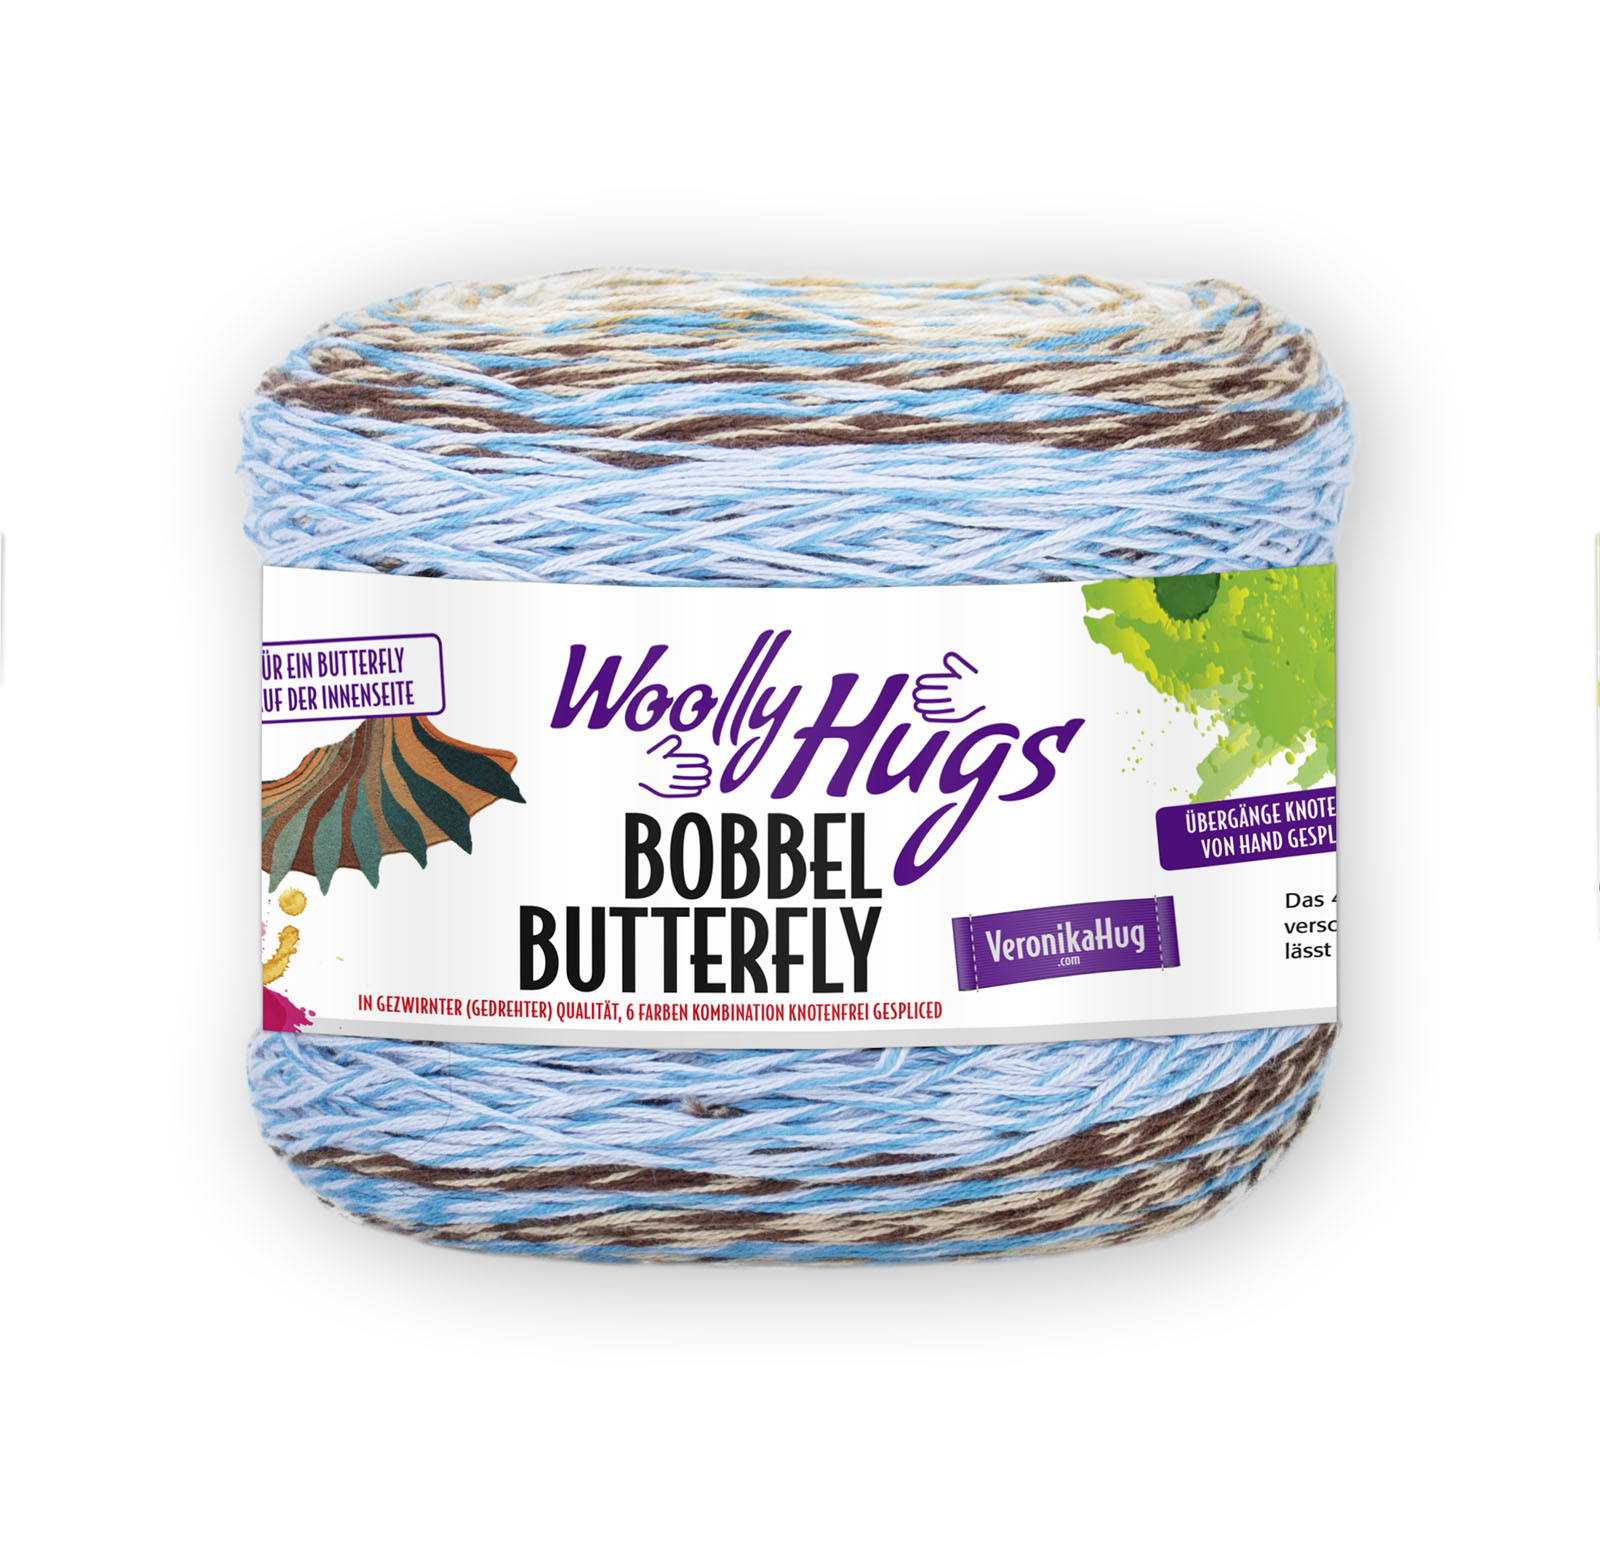 Woolly Hugs Butterfly